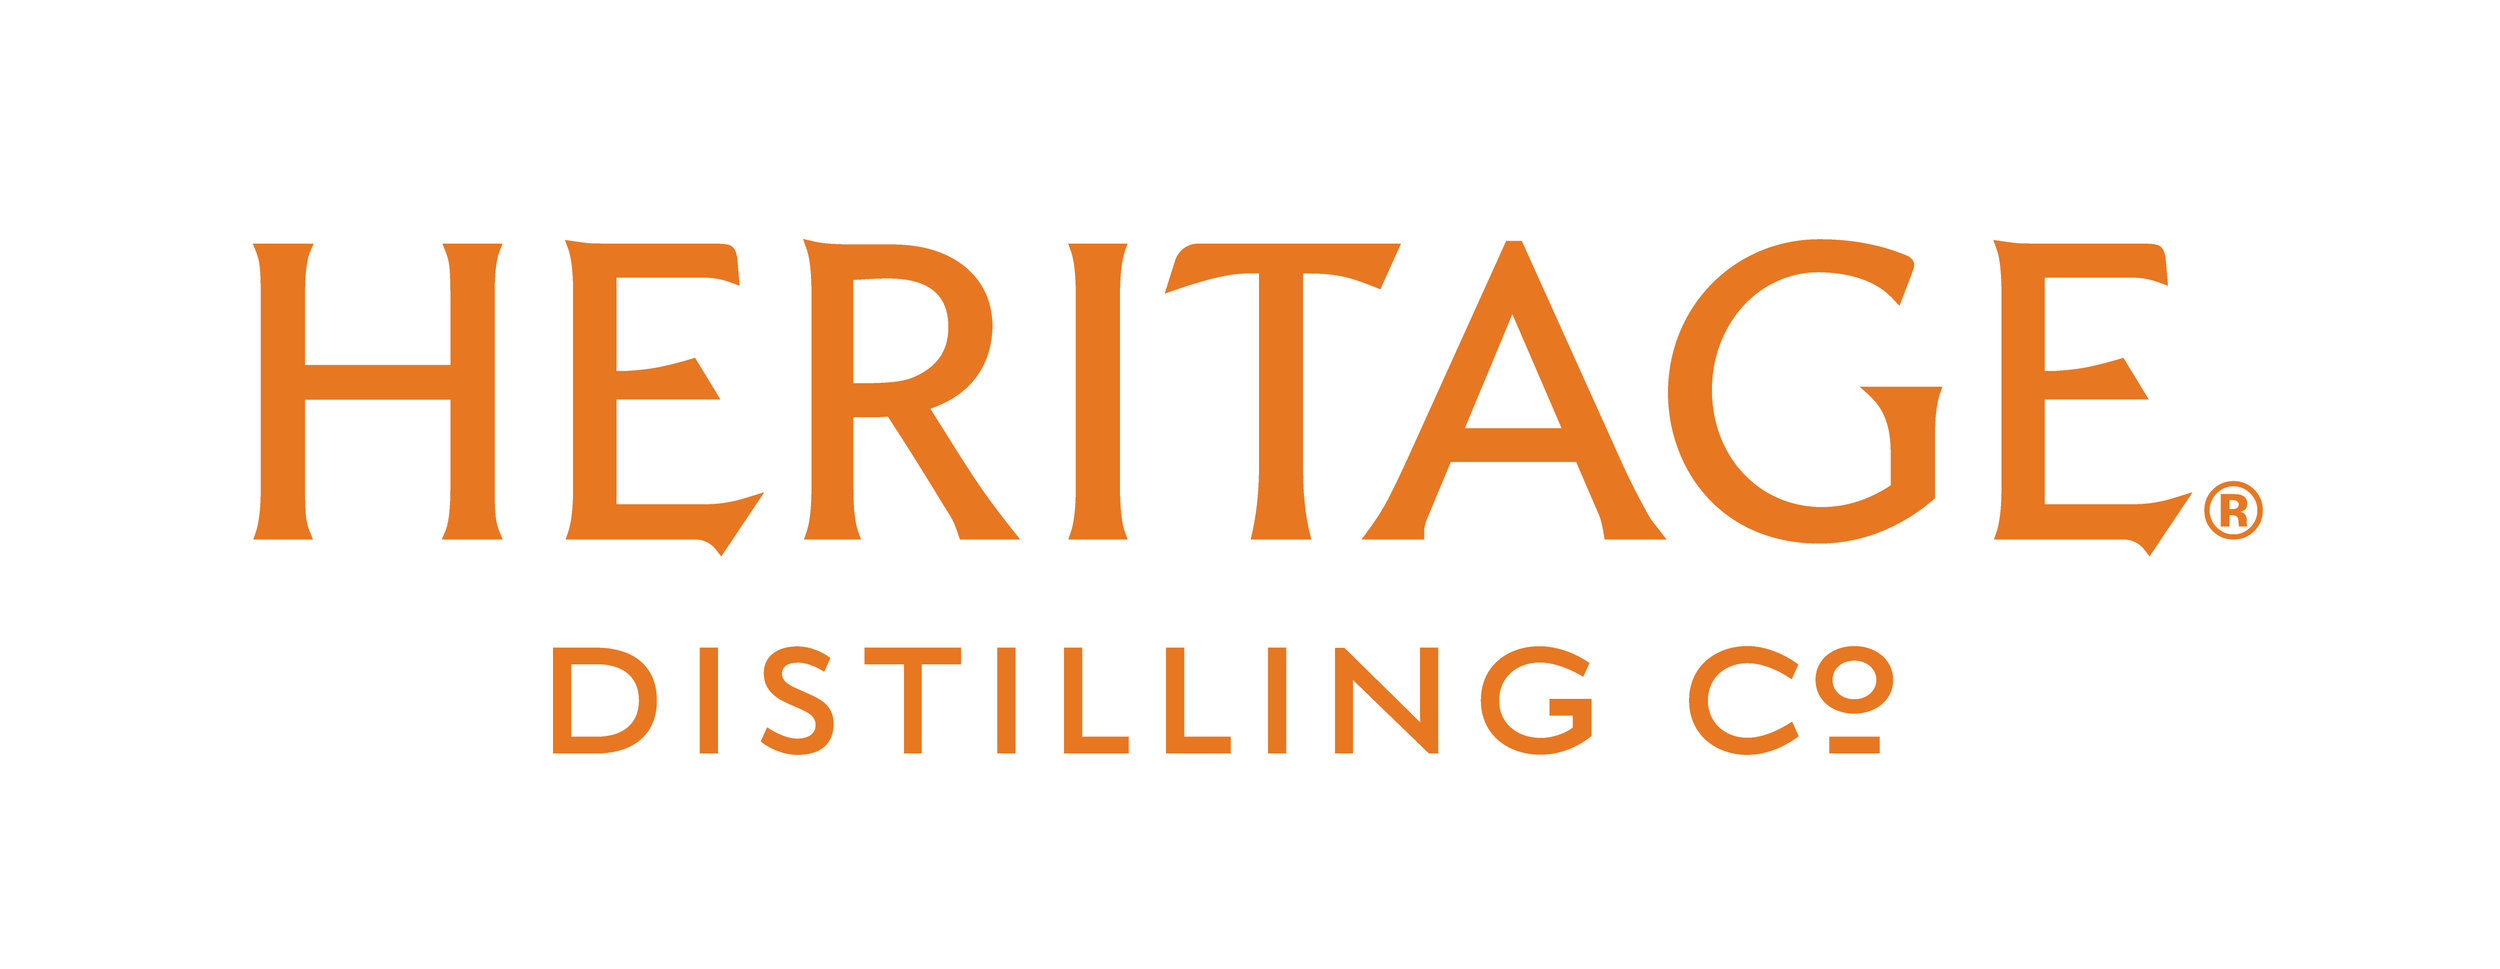 Heritage_Wordmark_Orange.jpg